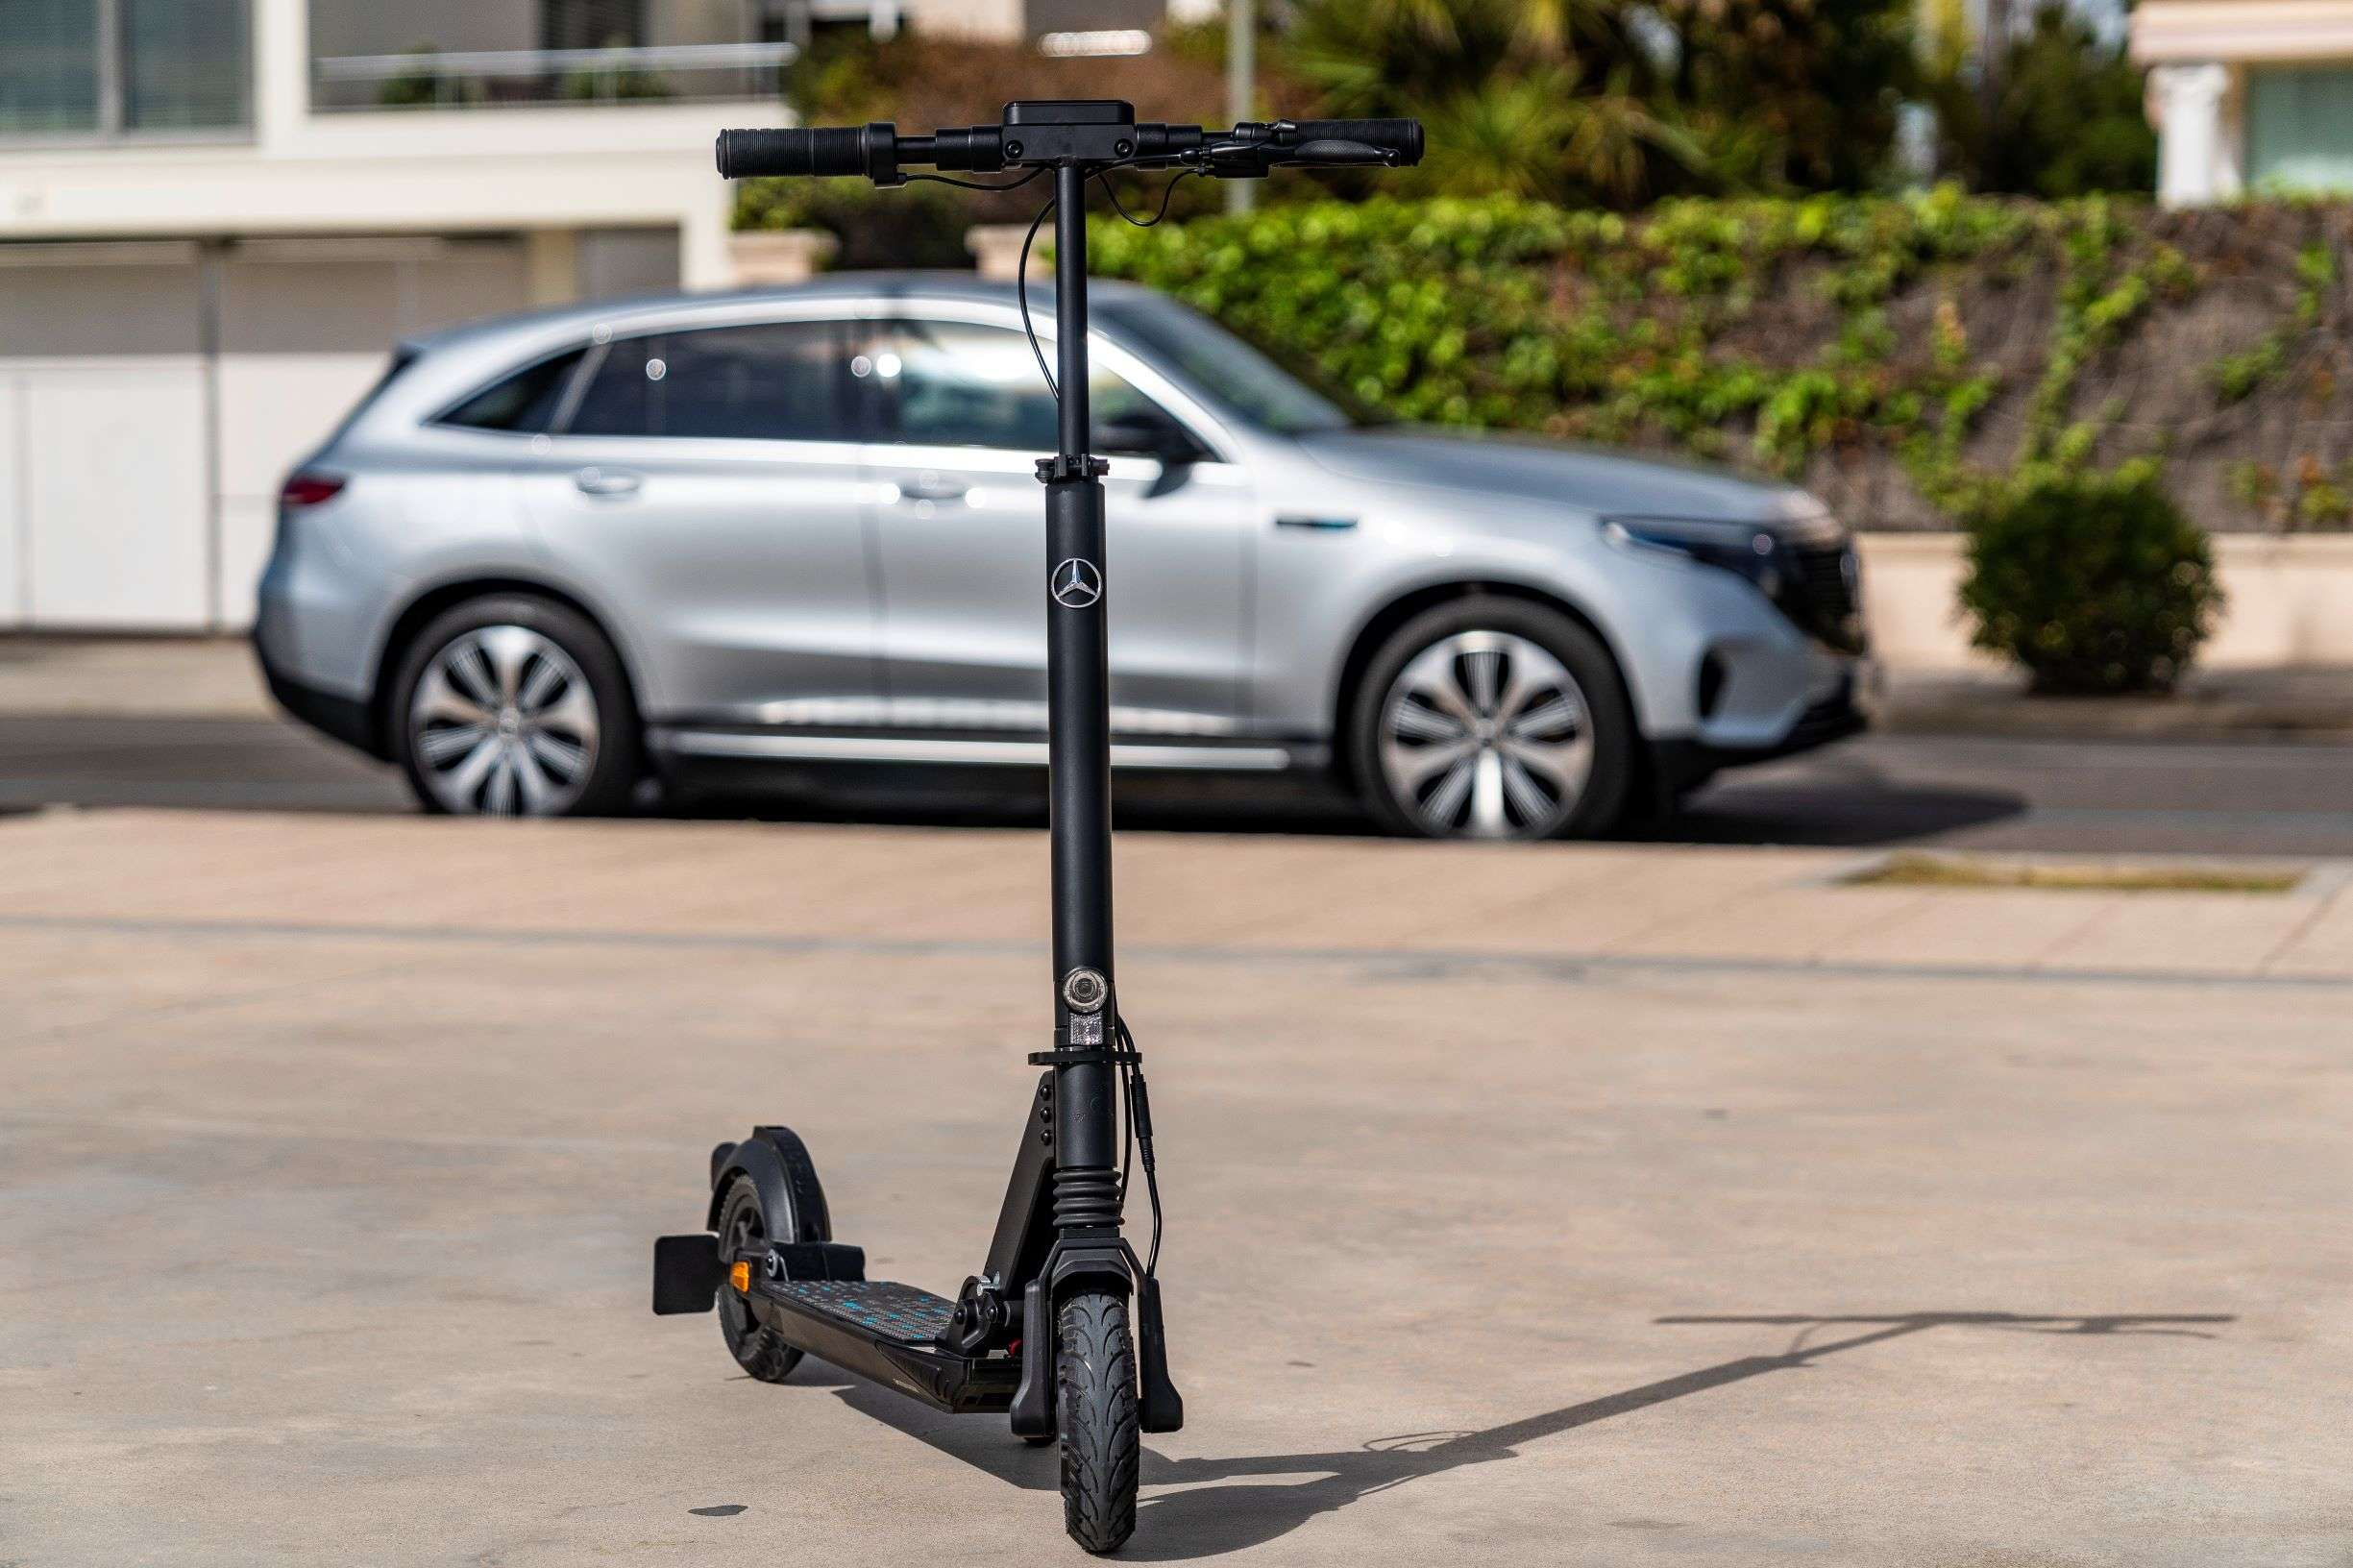 The e-scooter weighing around 13.5 kg has a folding mechanism, which can be operated with a press of the foot.